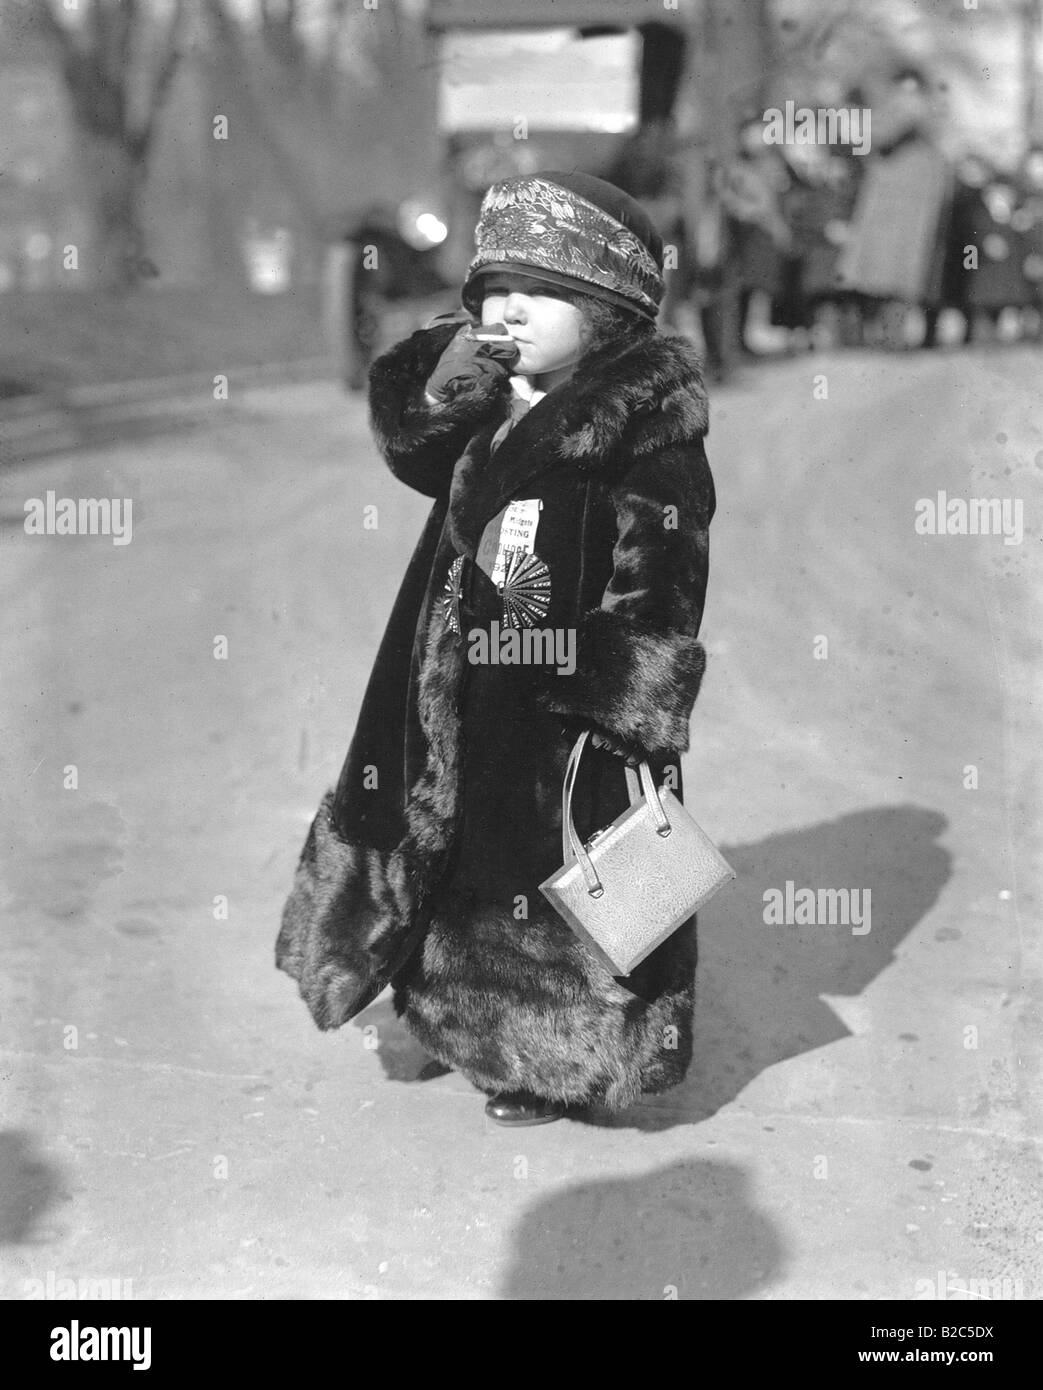 Child wearing a fur coat, smoking a cigarette, historic picture from about 1920 - Stock Image